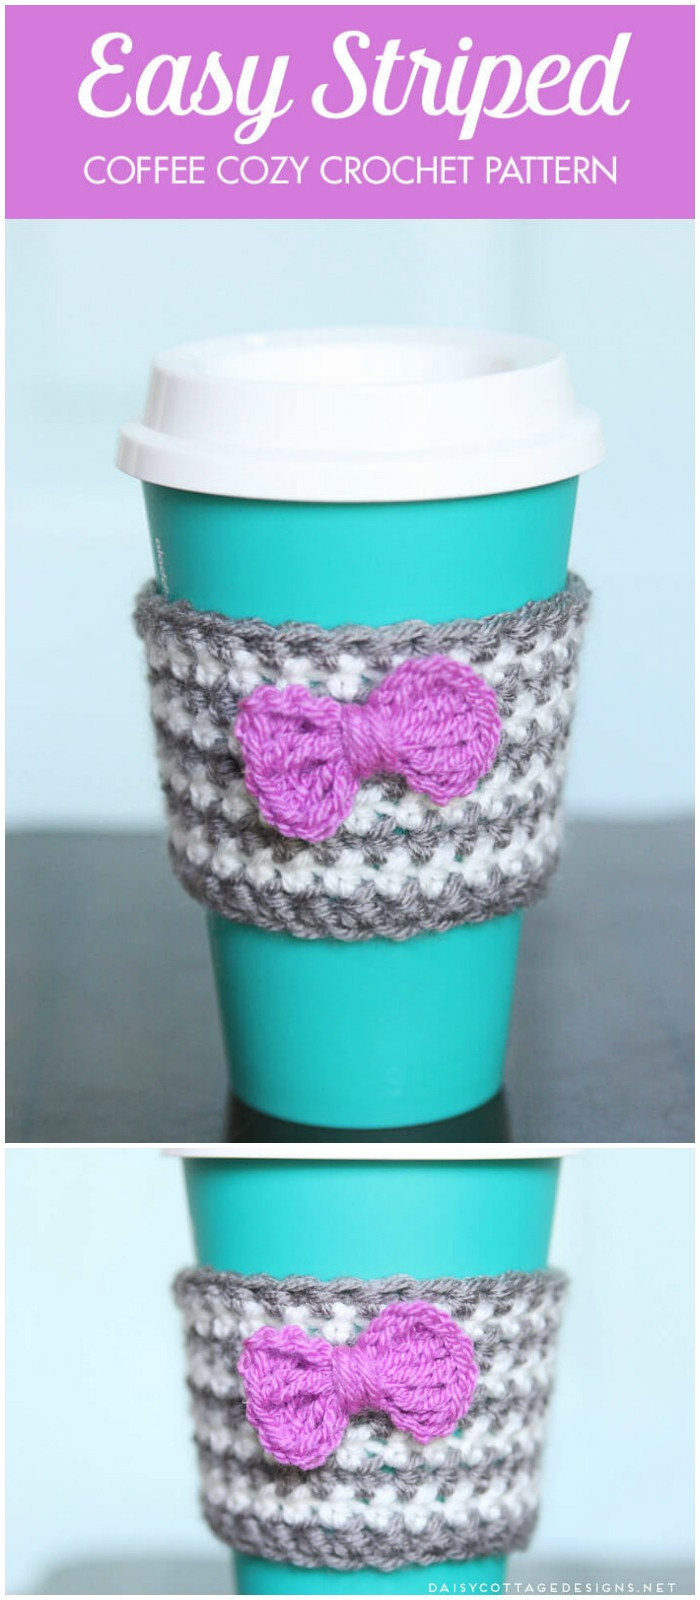 Crochet Coffee Cup Cozy Fresh 8 Crochet Cozy Patterns Free Crochet Patterns • Diy Home Of Crochet Coffee Cup Cozy Awesome Crochet and Other Stuff Crochet A Mug Cozy Free Pattern